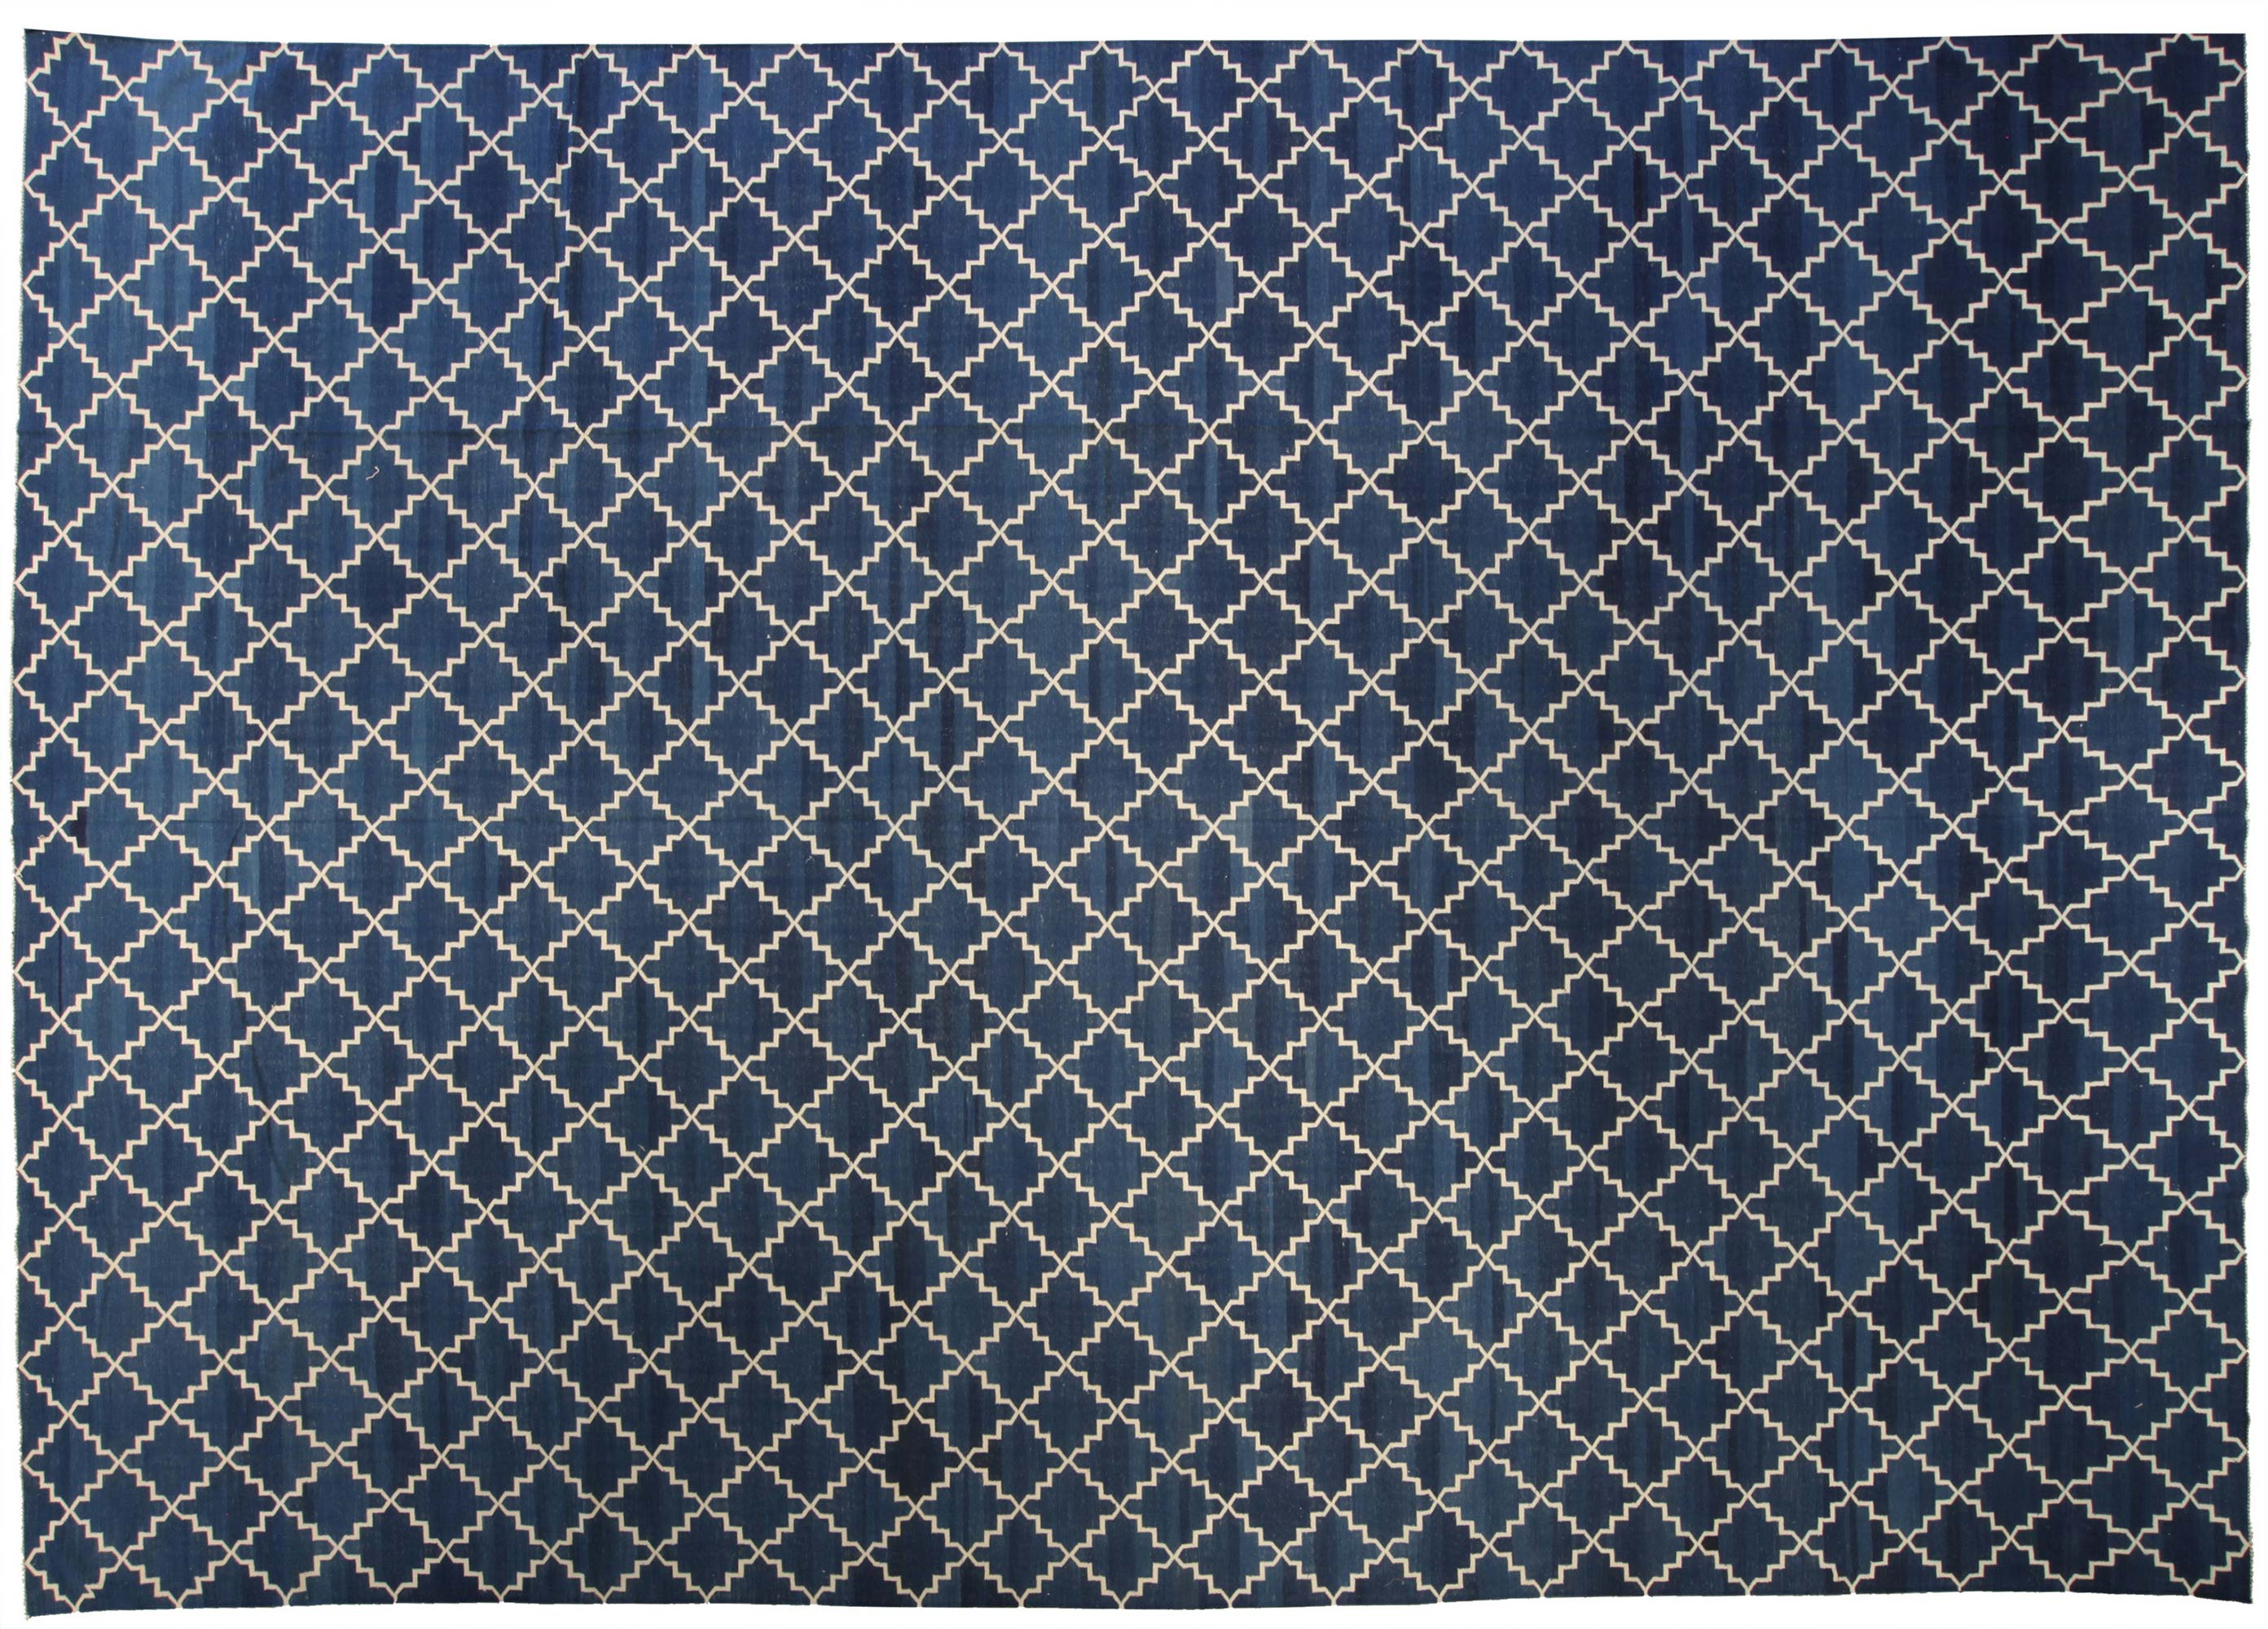 Contemporary Dhurrie Deep Blue And White Handwoven Cotton Rug N10389 By Dlb